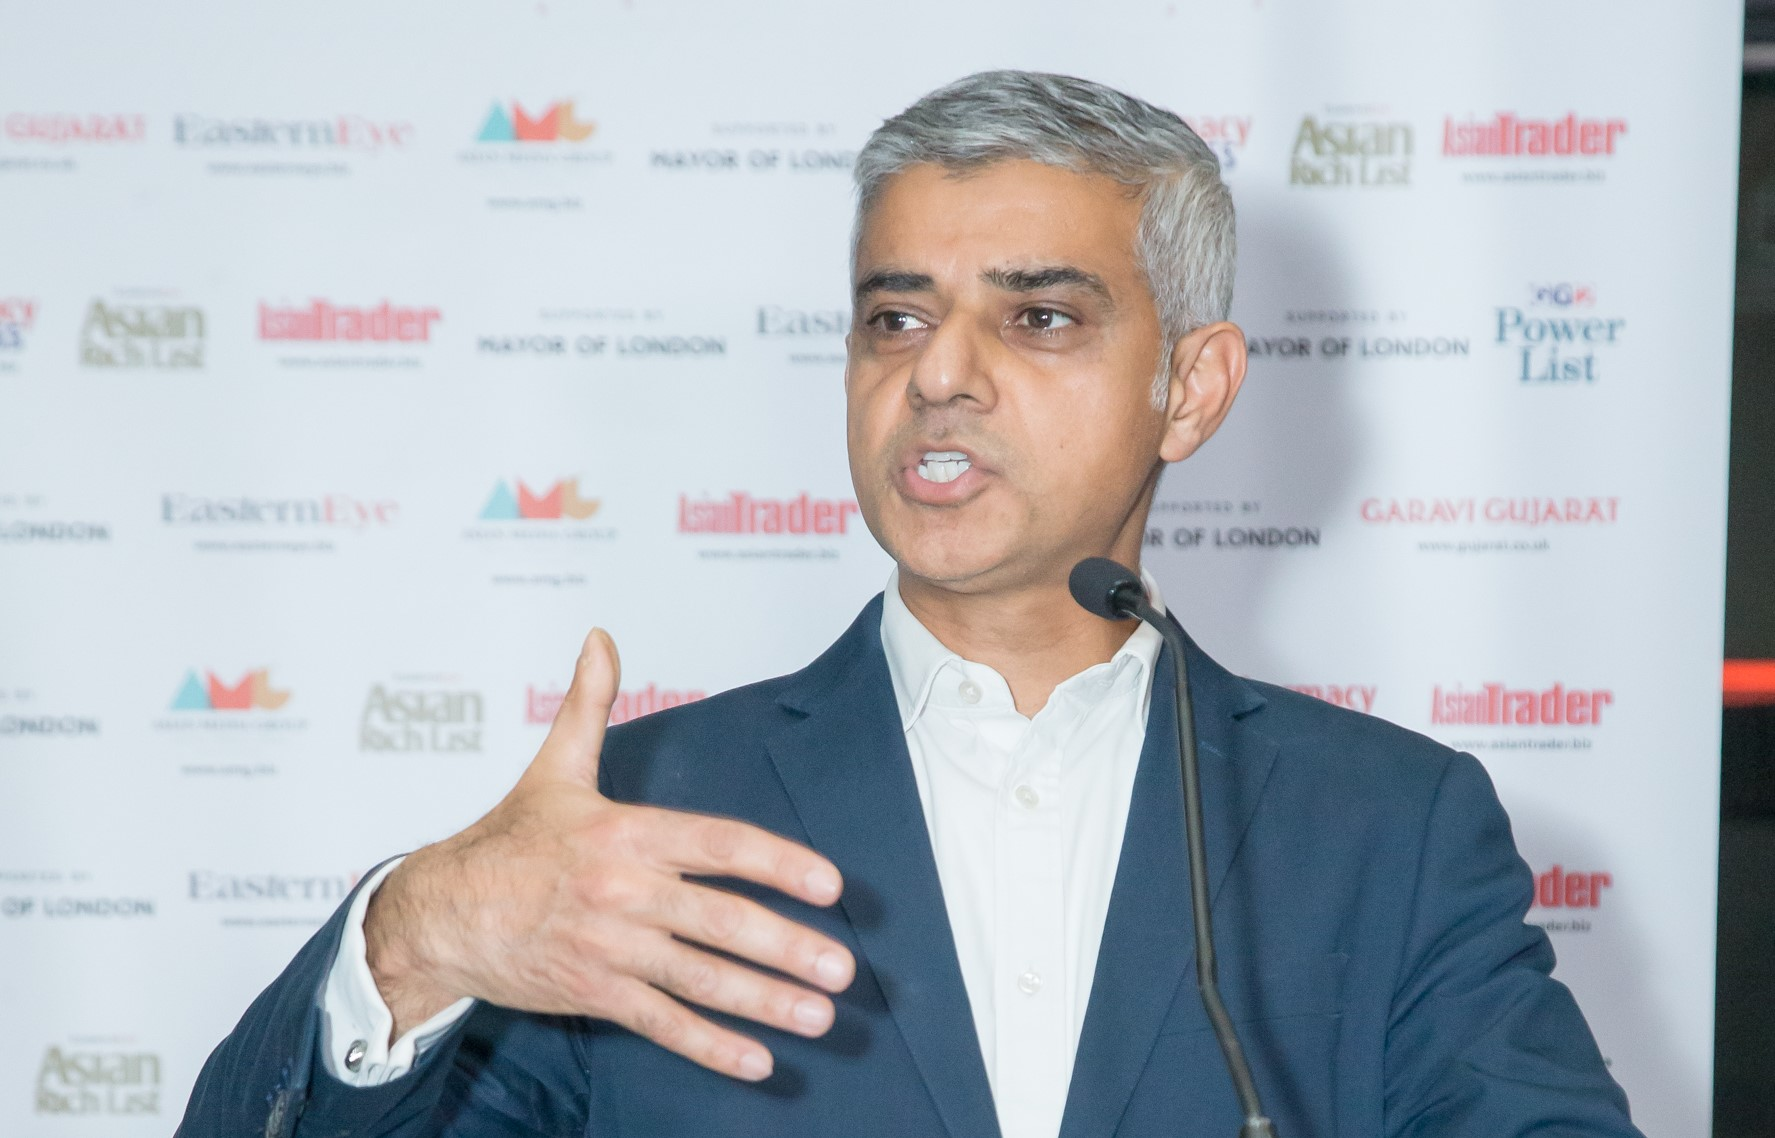 London mayor Sadiq Khan has praised police for their efforts to safeguard the Indian High Commission, in light of planned anti-India protests this weekend